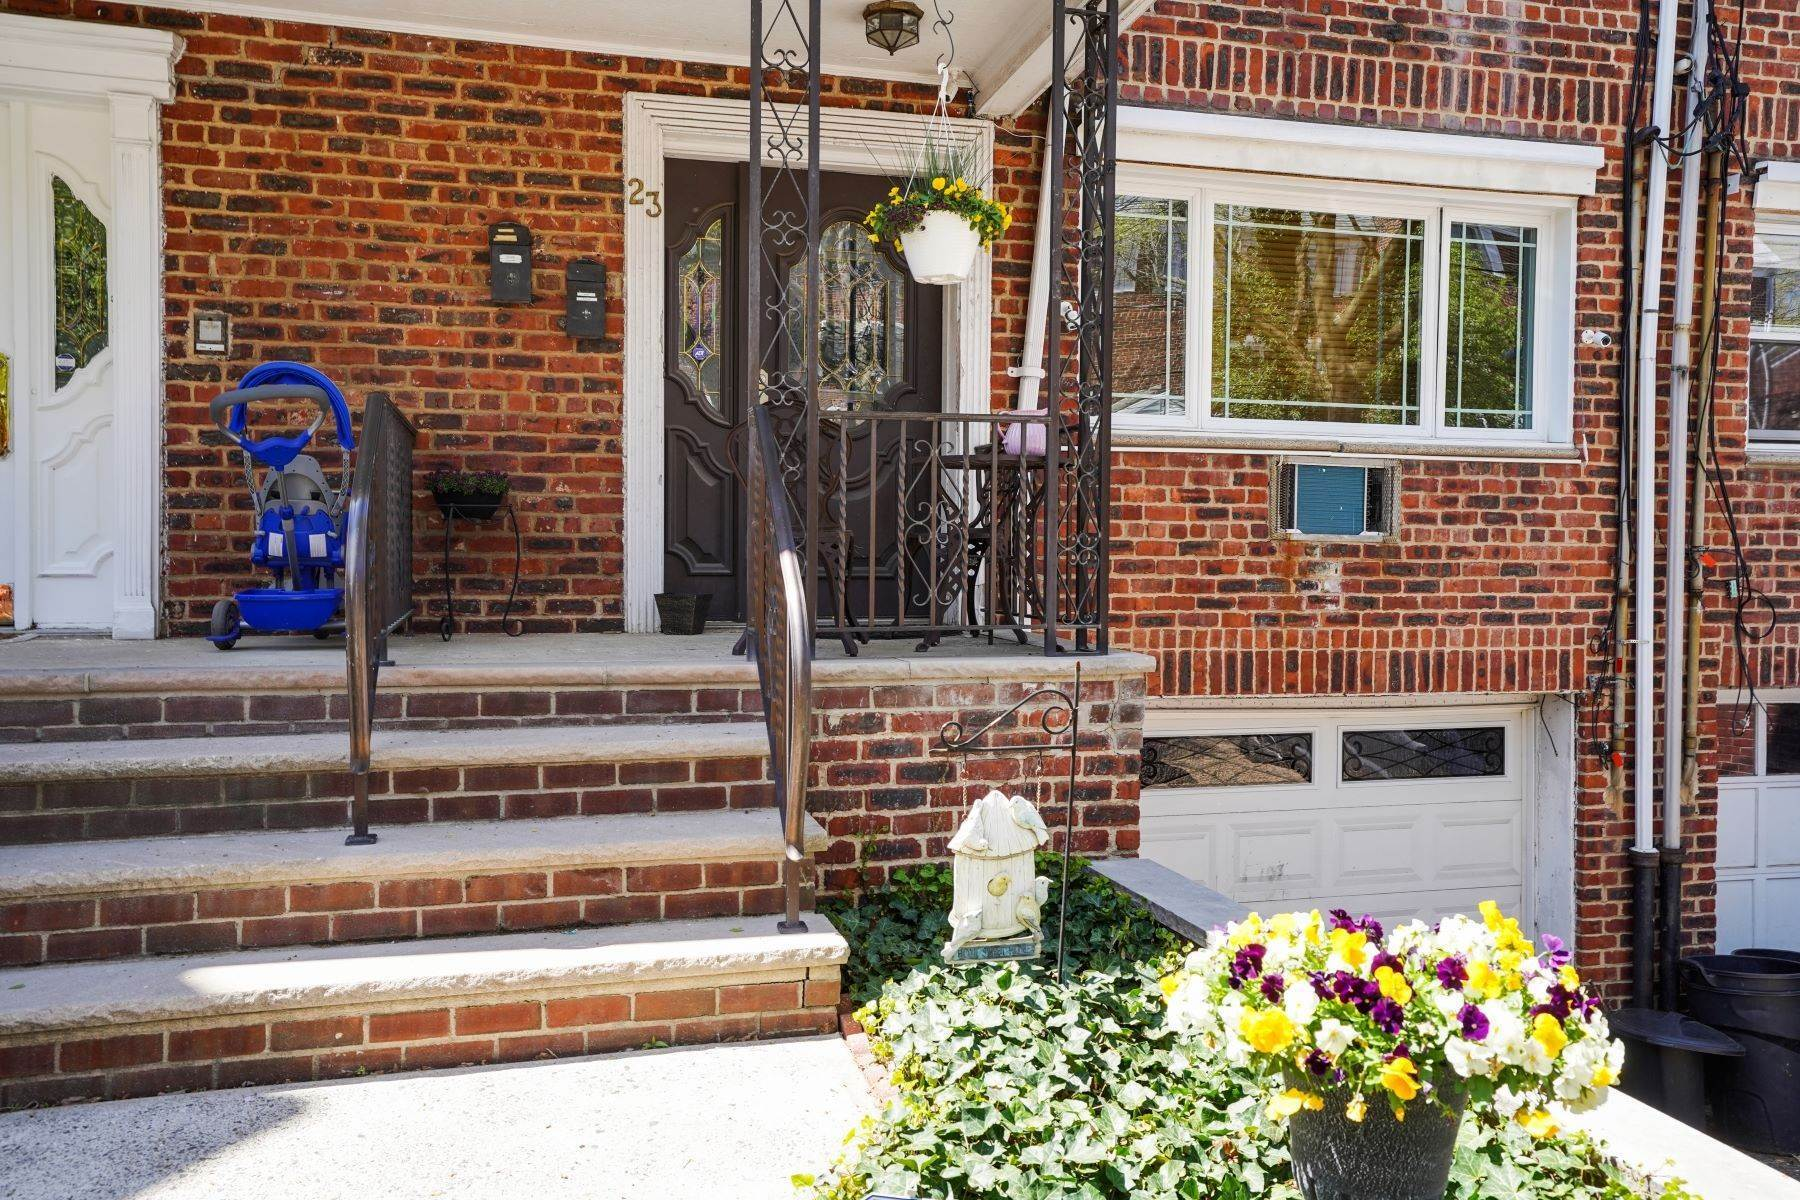 townhouses en LANDLORD PAYS HALF BROKER FEE******* 23 Sunset Avenue, Unit 2, Bayonne, Nueva Jersey 07002 Estados Unidos